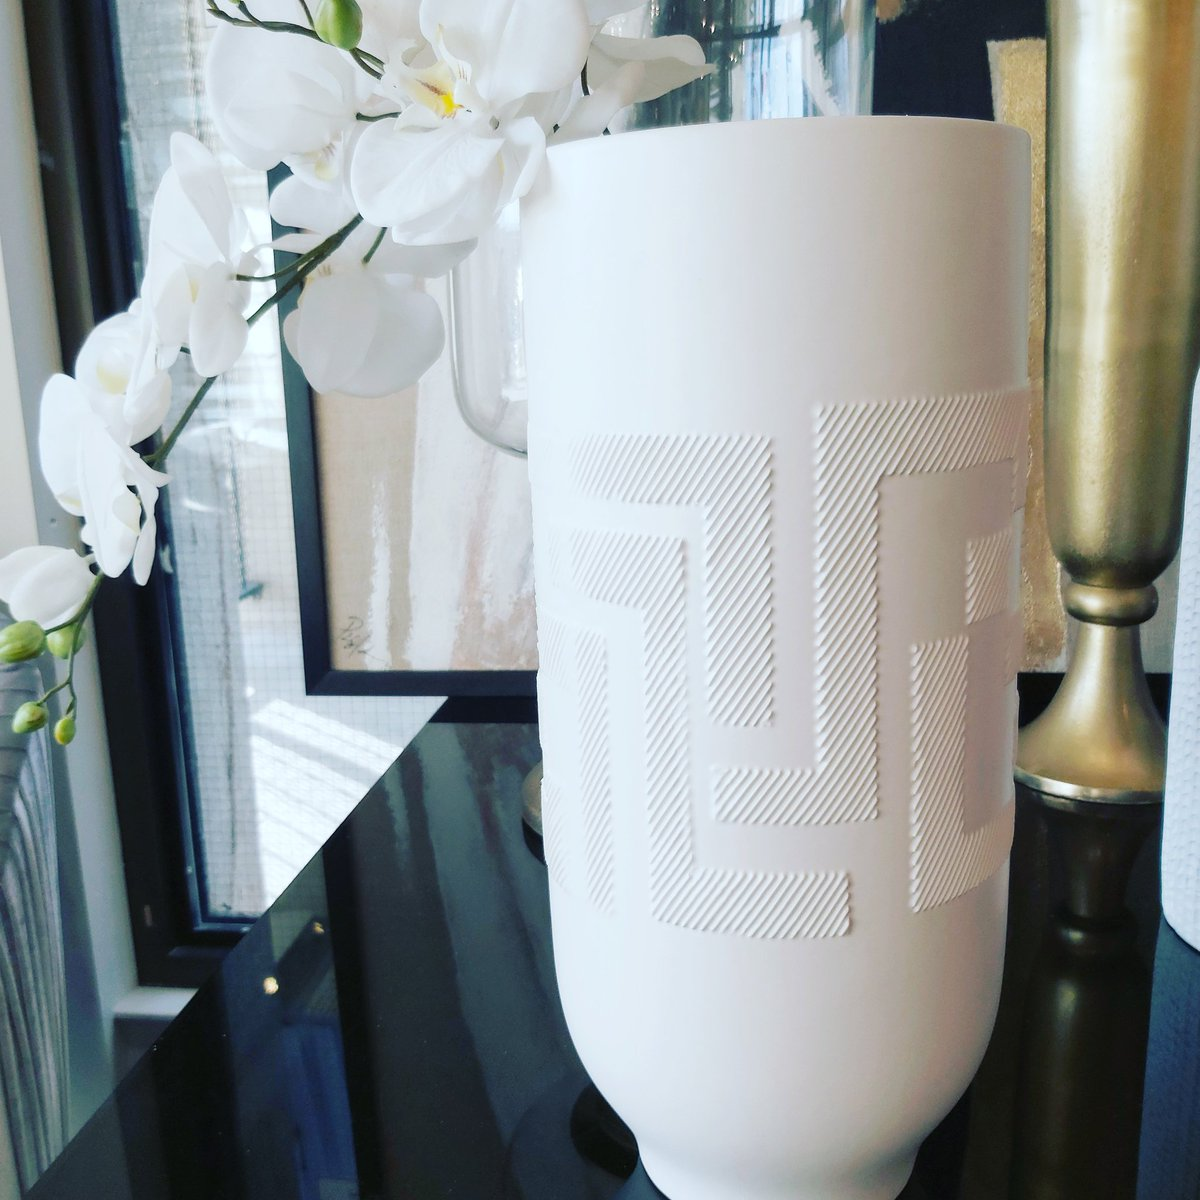 If you are going all white celebrate the details. #monochromatic #artdeco #details #itsinthedetails #vases #orchid #homestyling #homedecor #interiordesign #whiteaccents